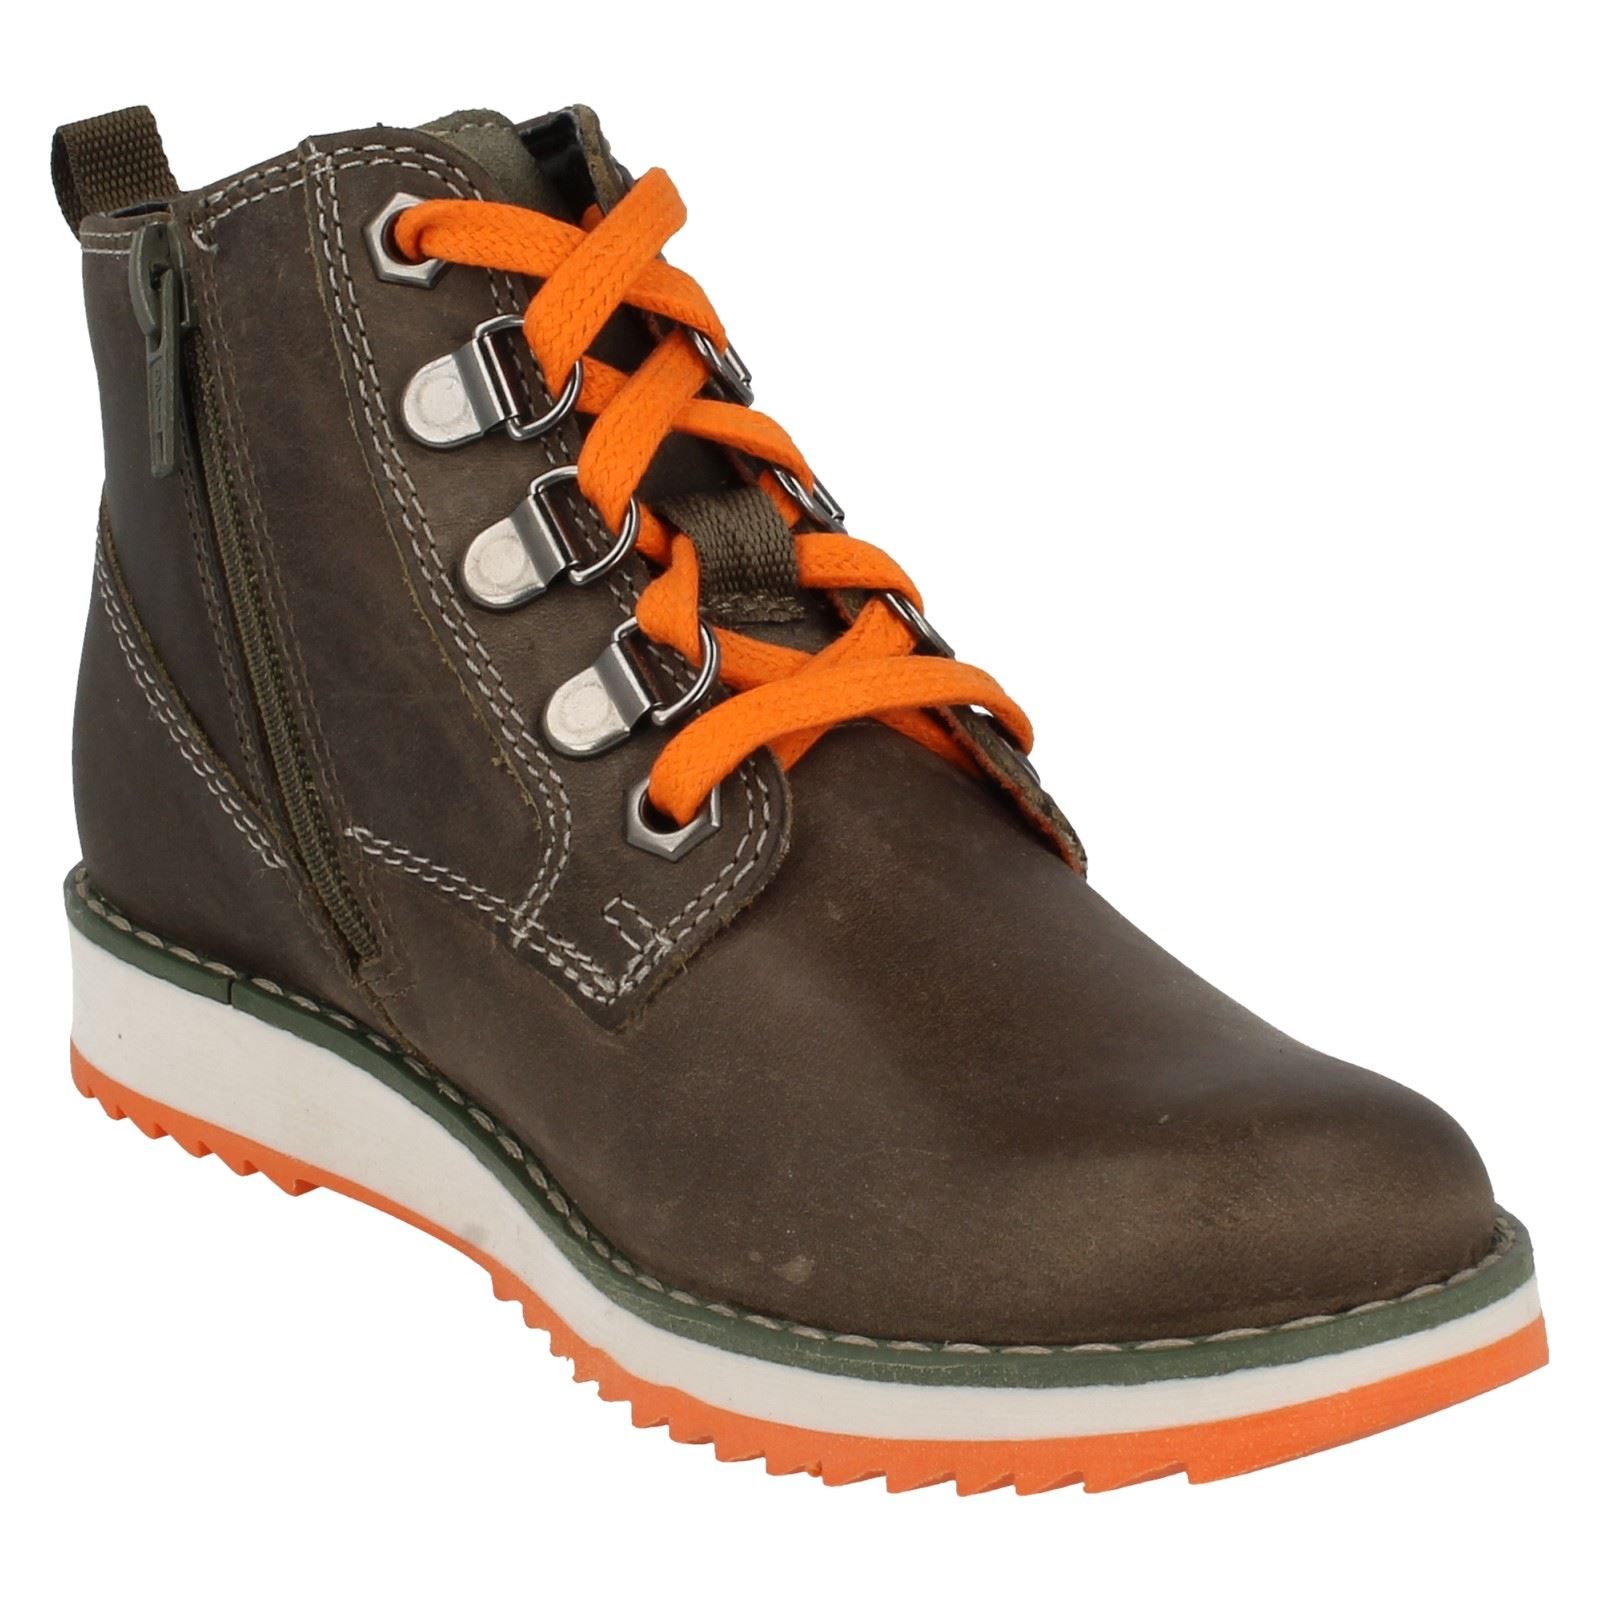 Size 3 Boys Leather Boots with FREE Shipping & Exchanges, and a % price guarantee. Choose from a huge selection of Size 3 Boys Leather Boots styles.